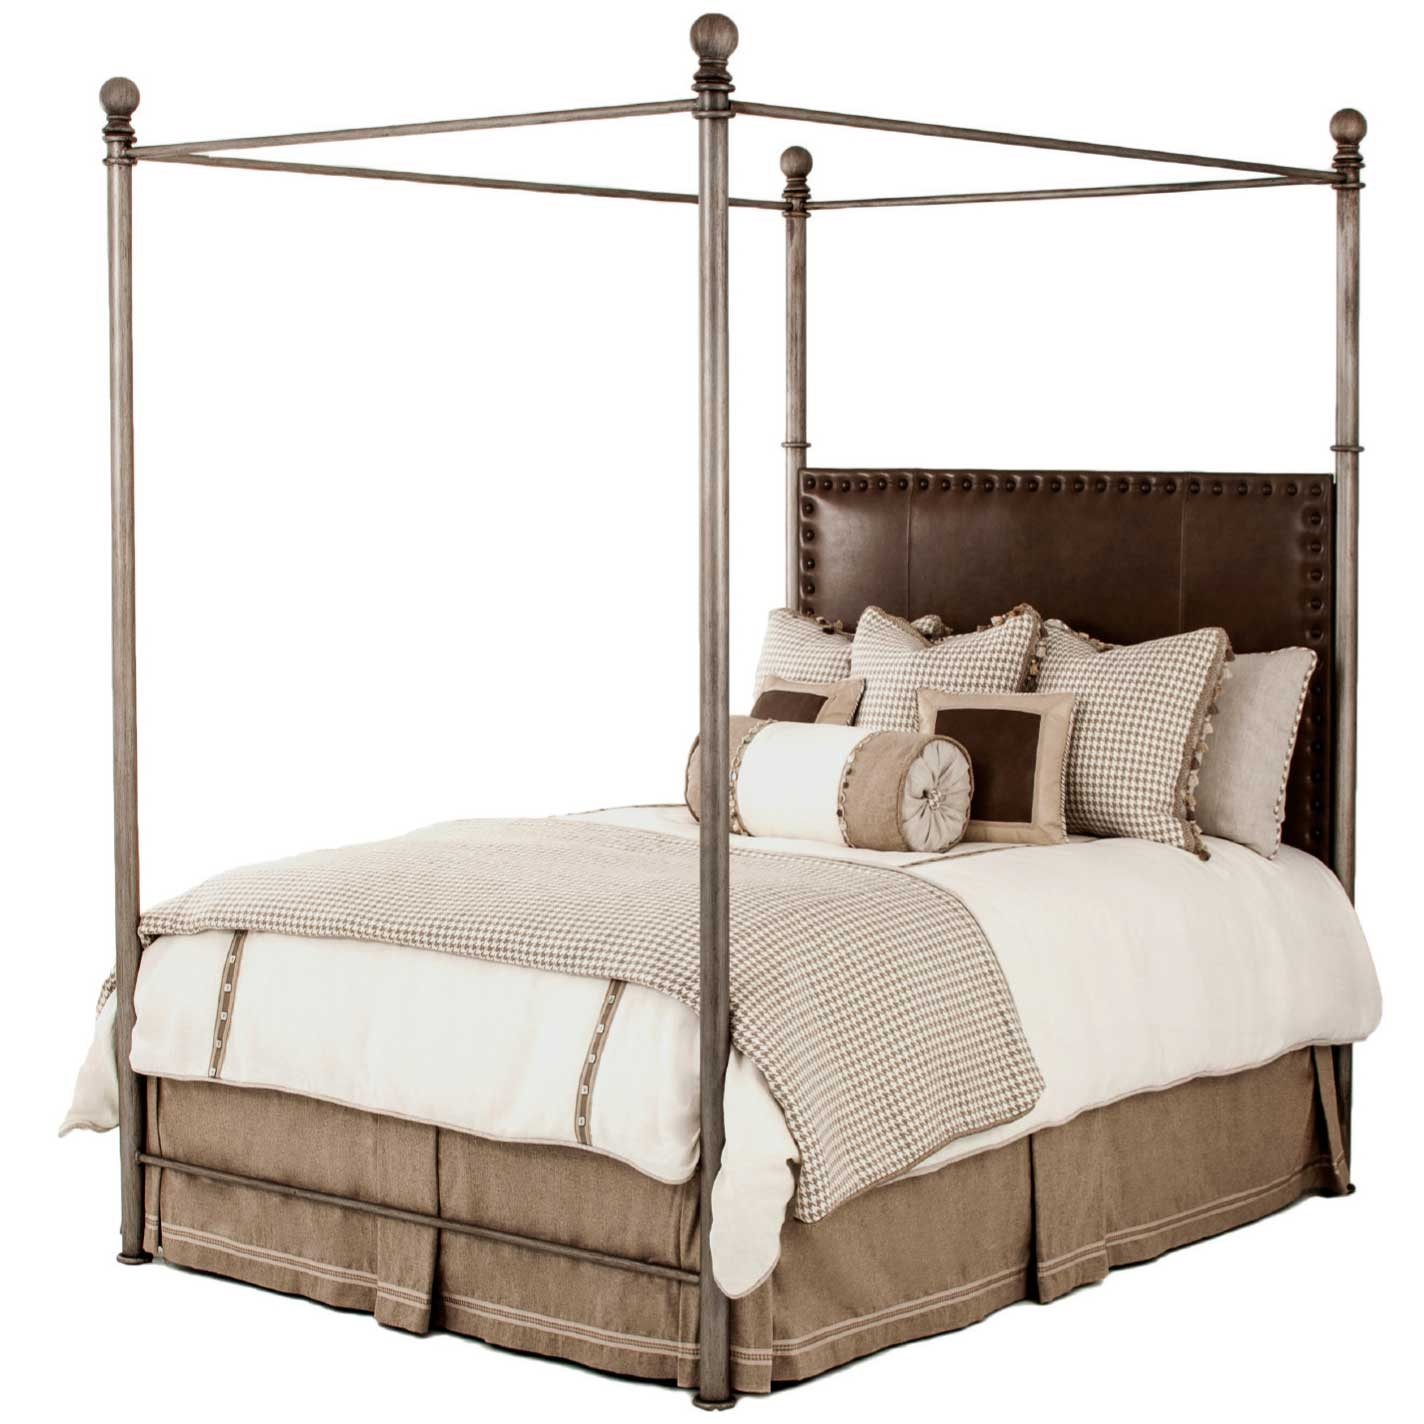 pictured here is the luxurious davant canopy bed with